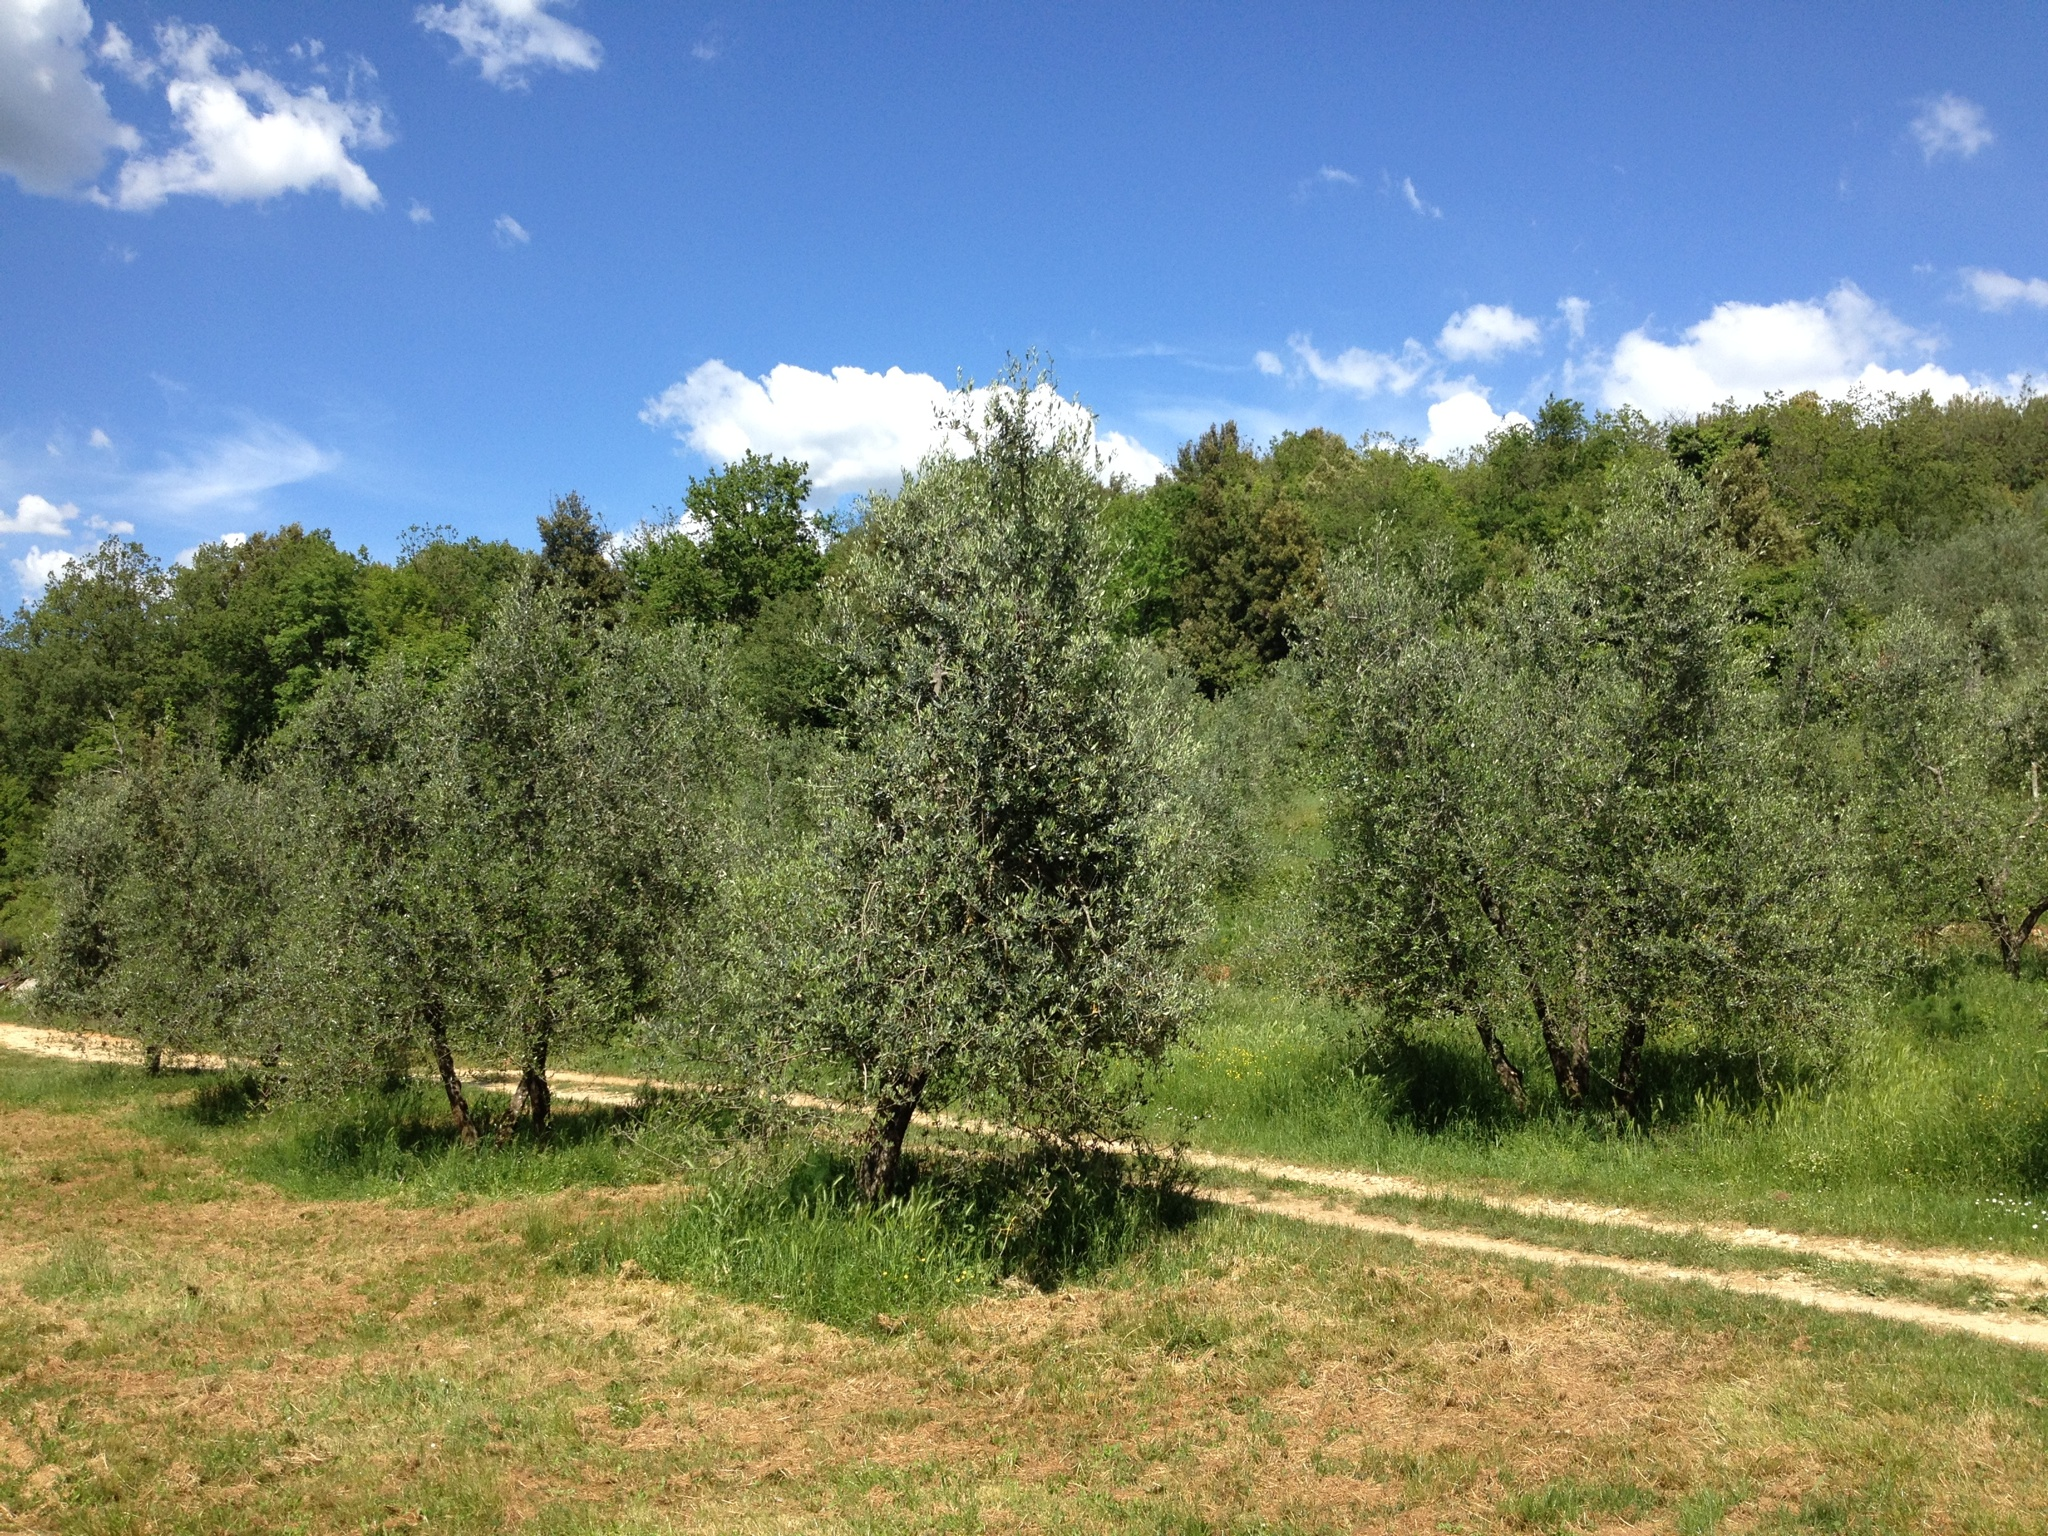 Olive trees at Spannocchia